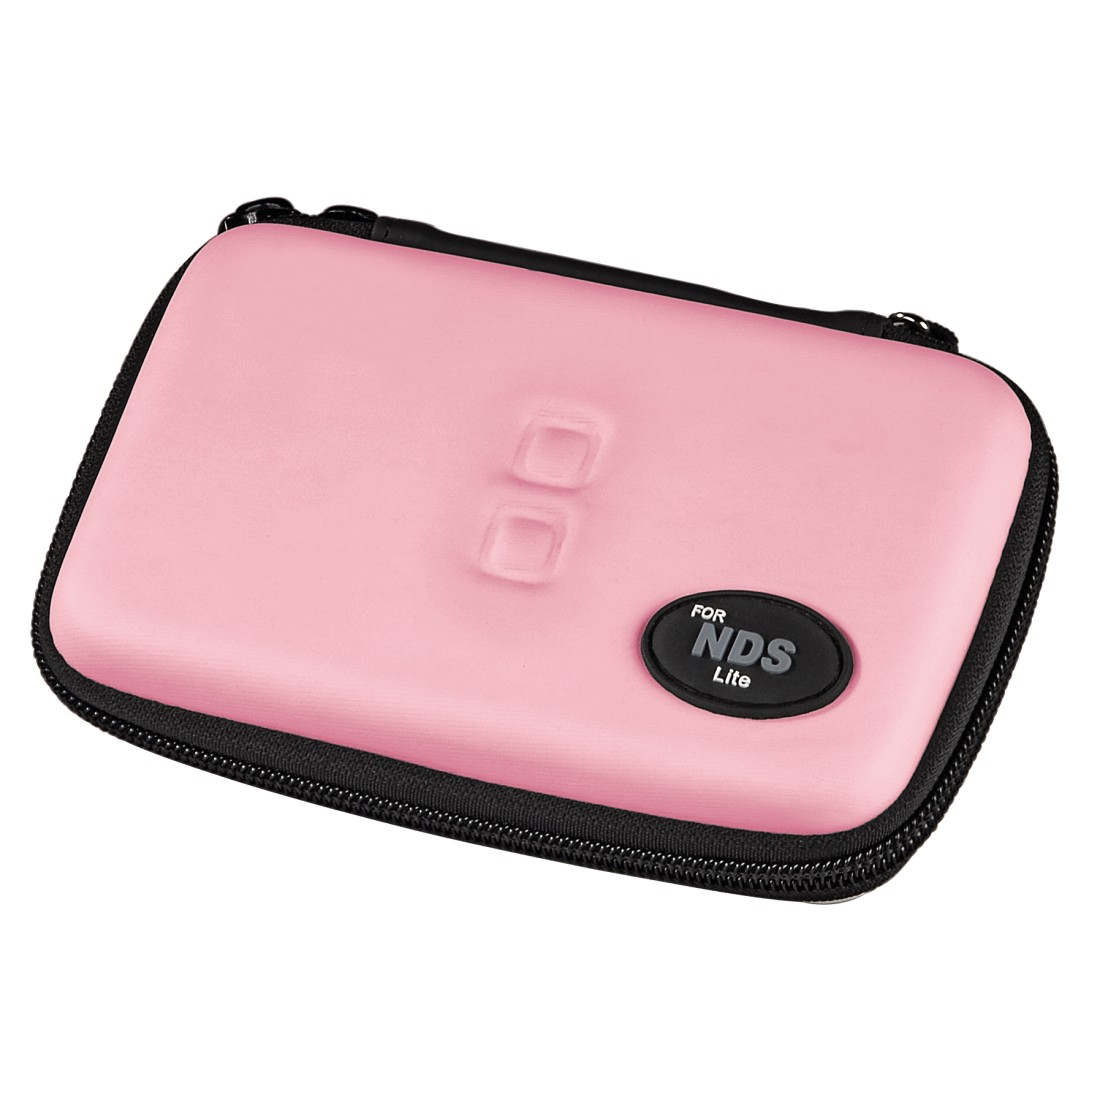 abx High-Res Image - Hama, Case for Nintendo DS lite, pink